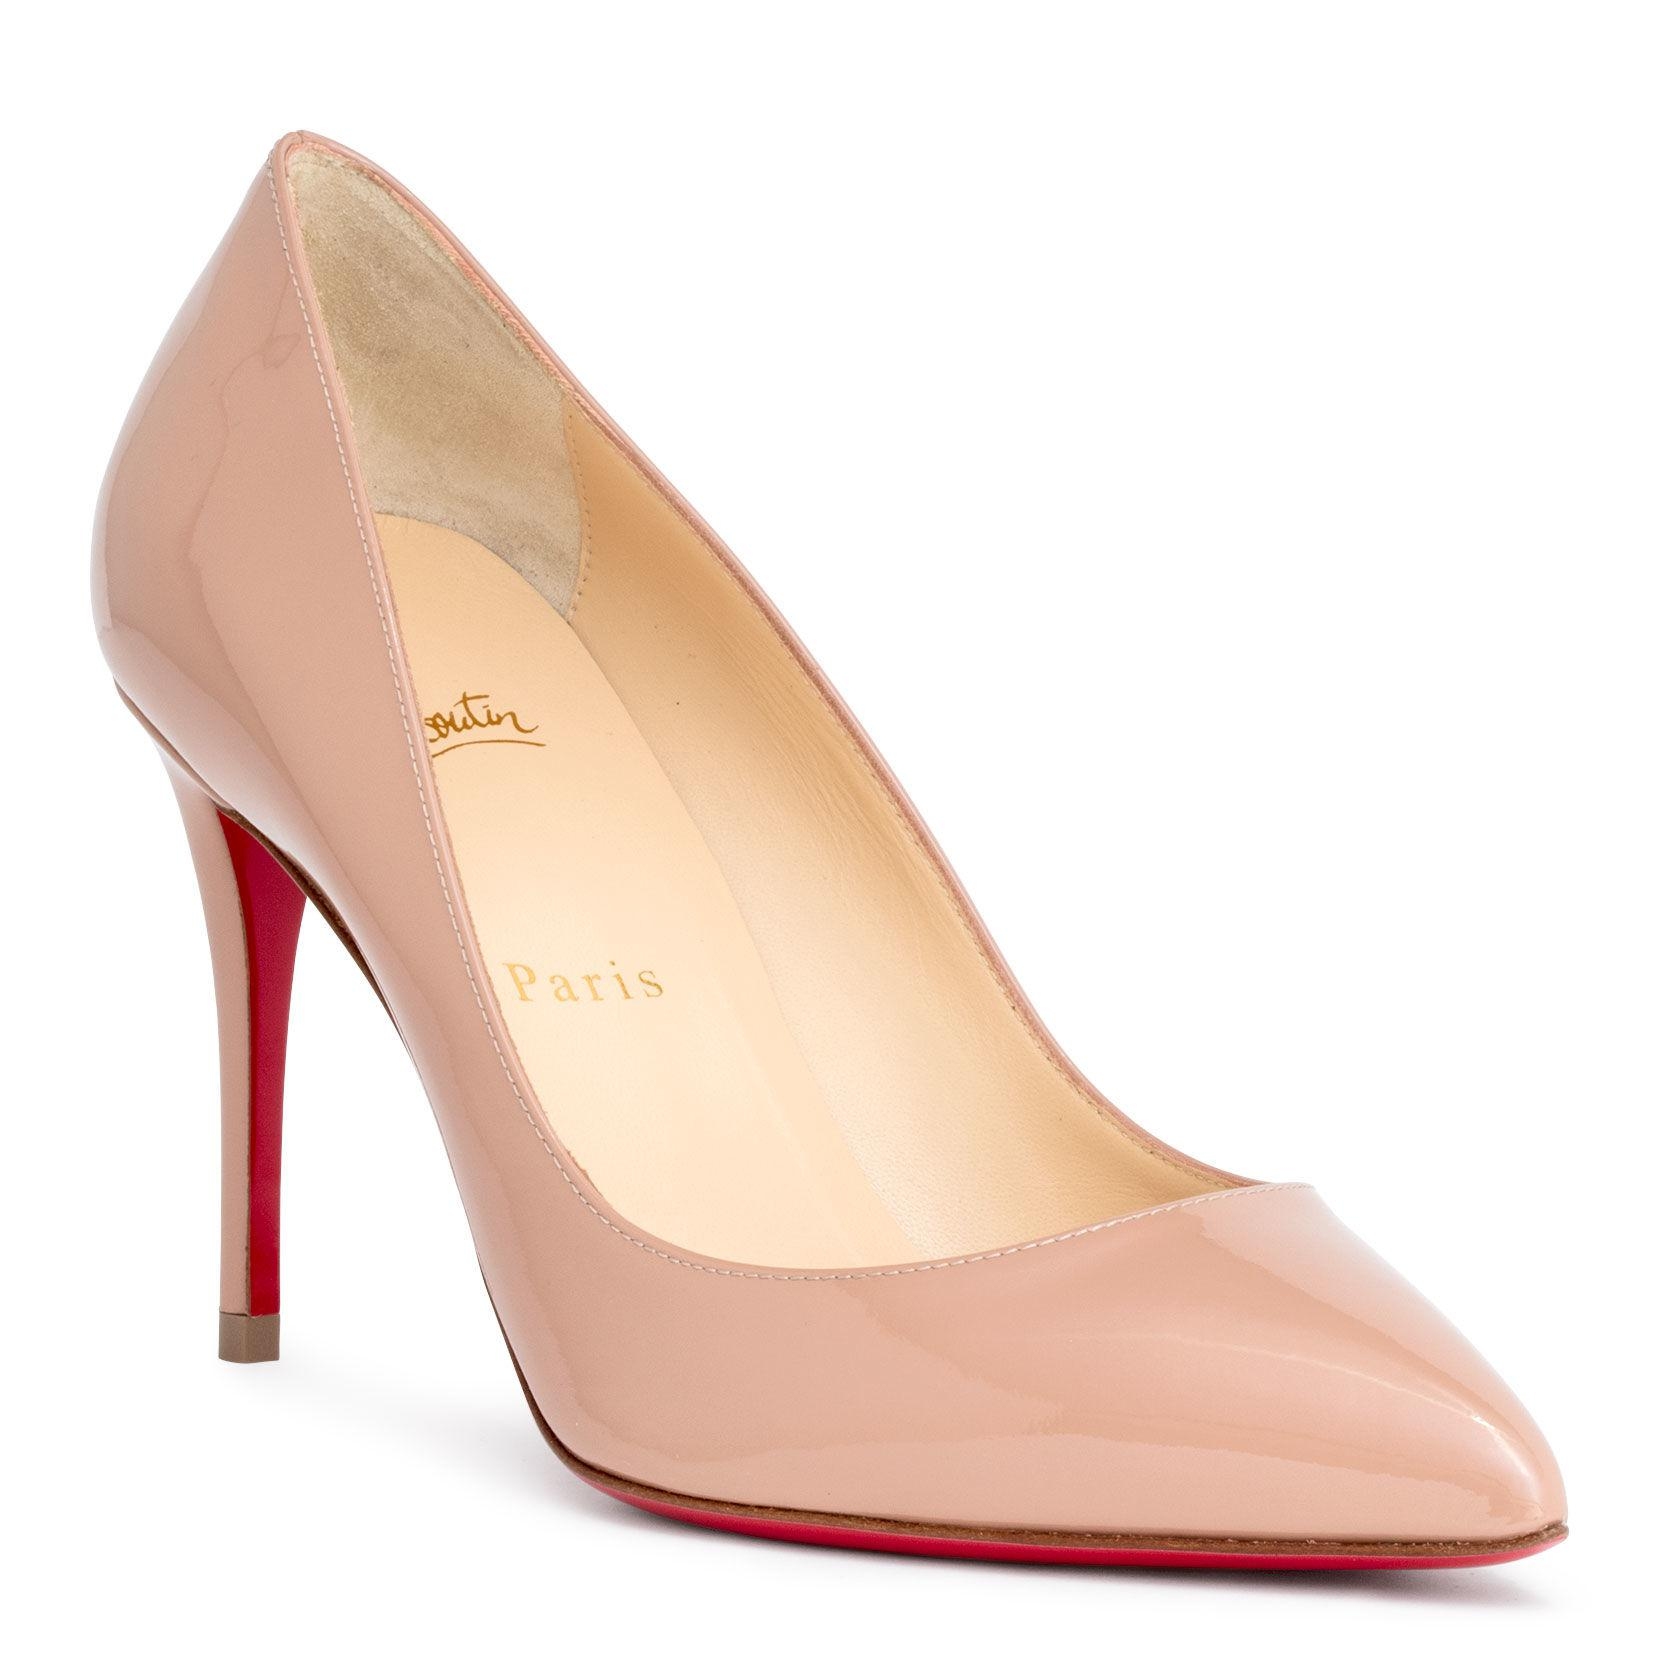 52837cd2179 Christian Louboutin. Women s Natural Pigalle Follies 85 Beige Patent Pumps